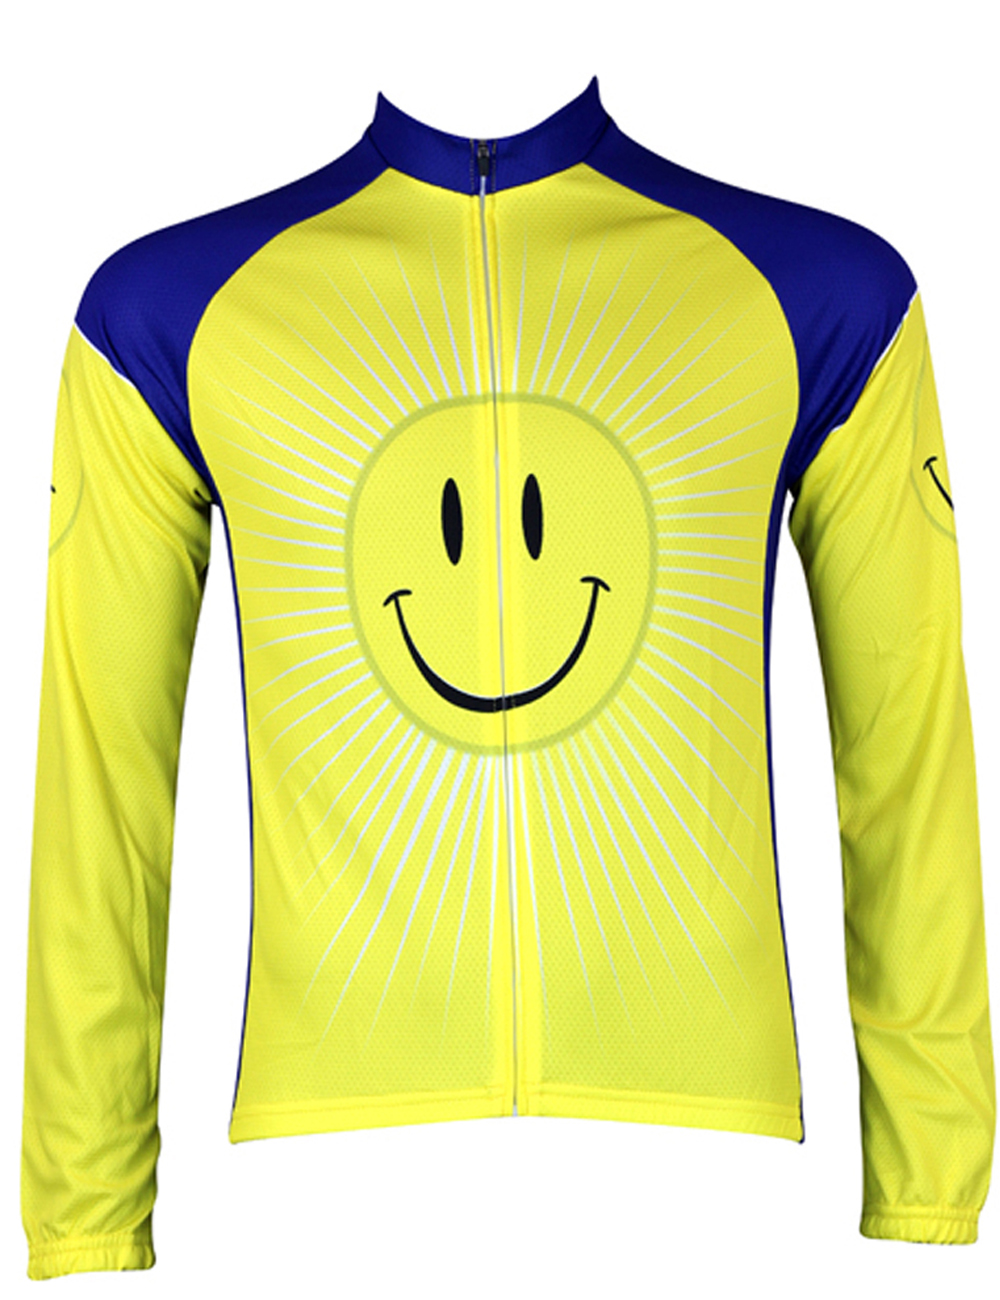 New Alien SportsWear Smile Pattern Mens Bike Clothing Yellow Bike Clothes Polyester Long Sleeve cycling jersey Size 2XS To 6XL